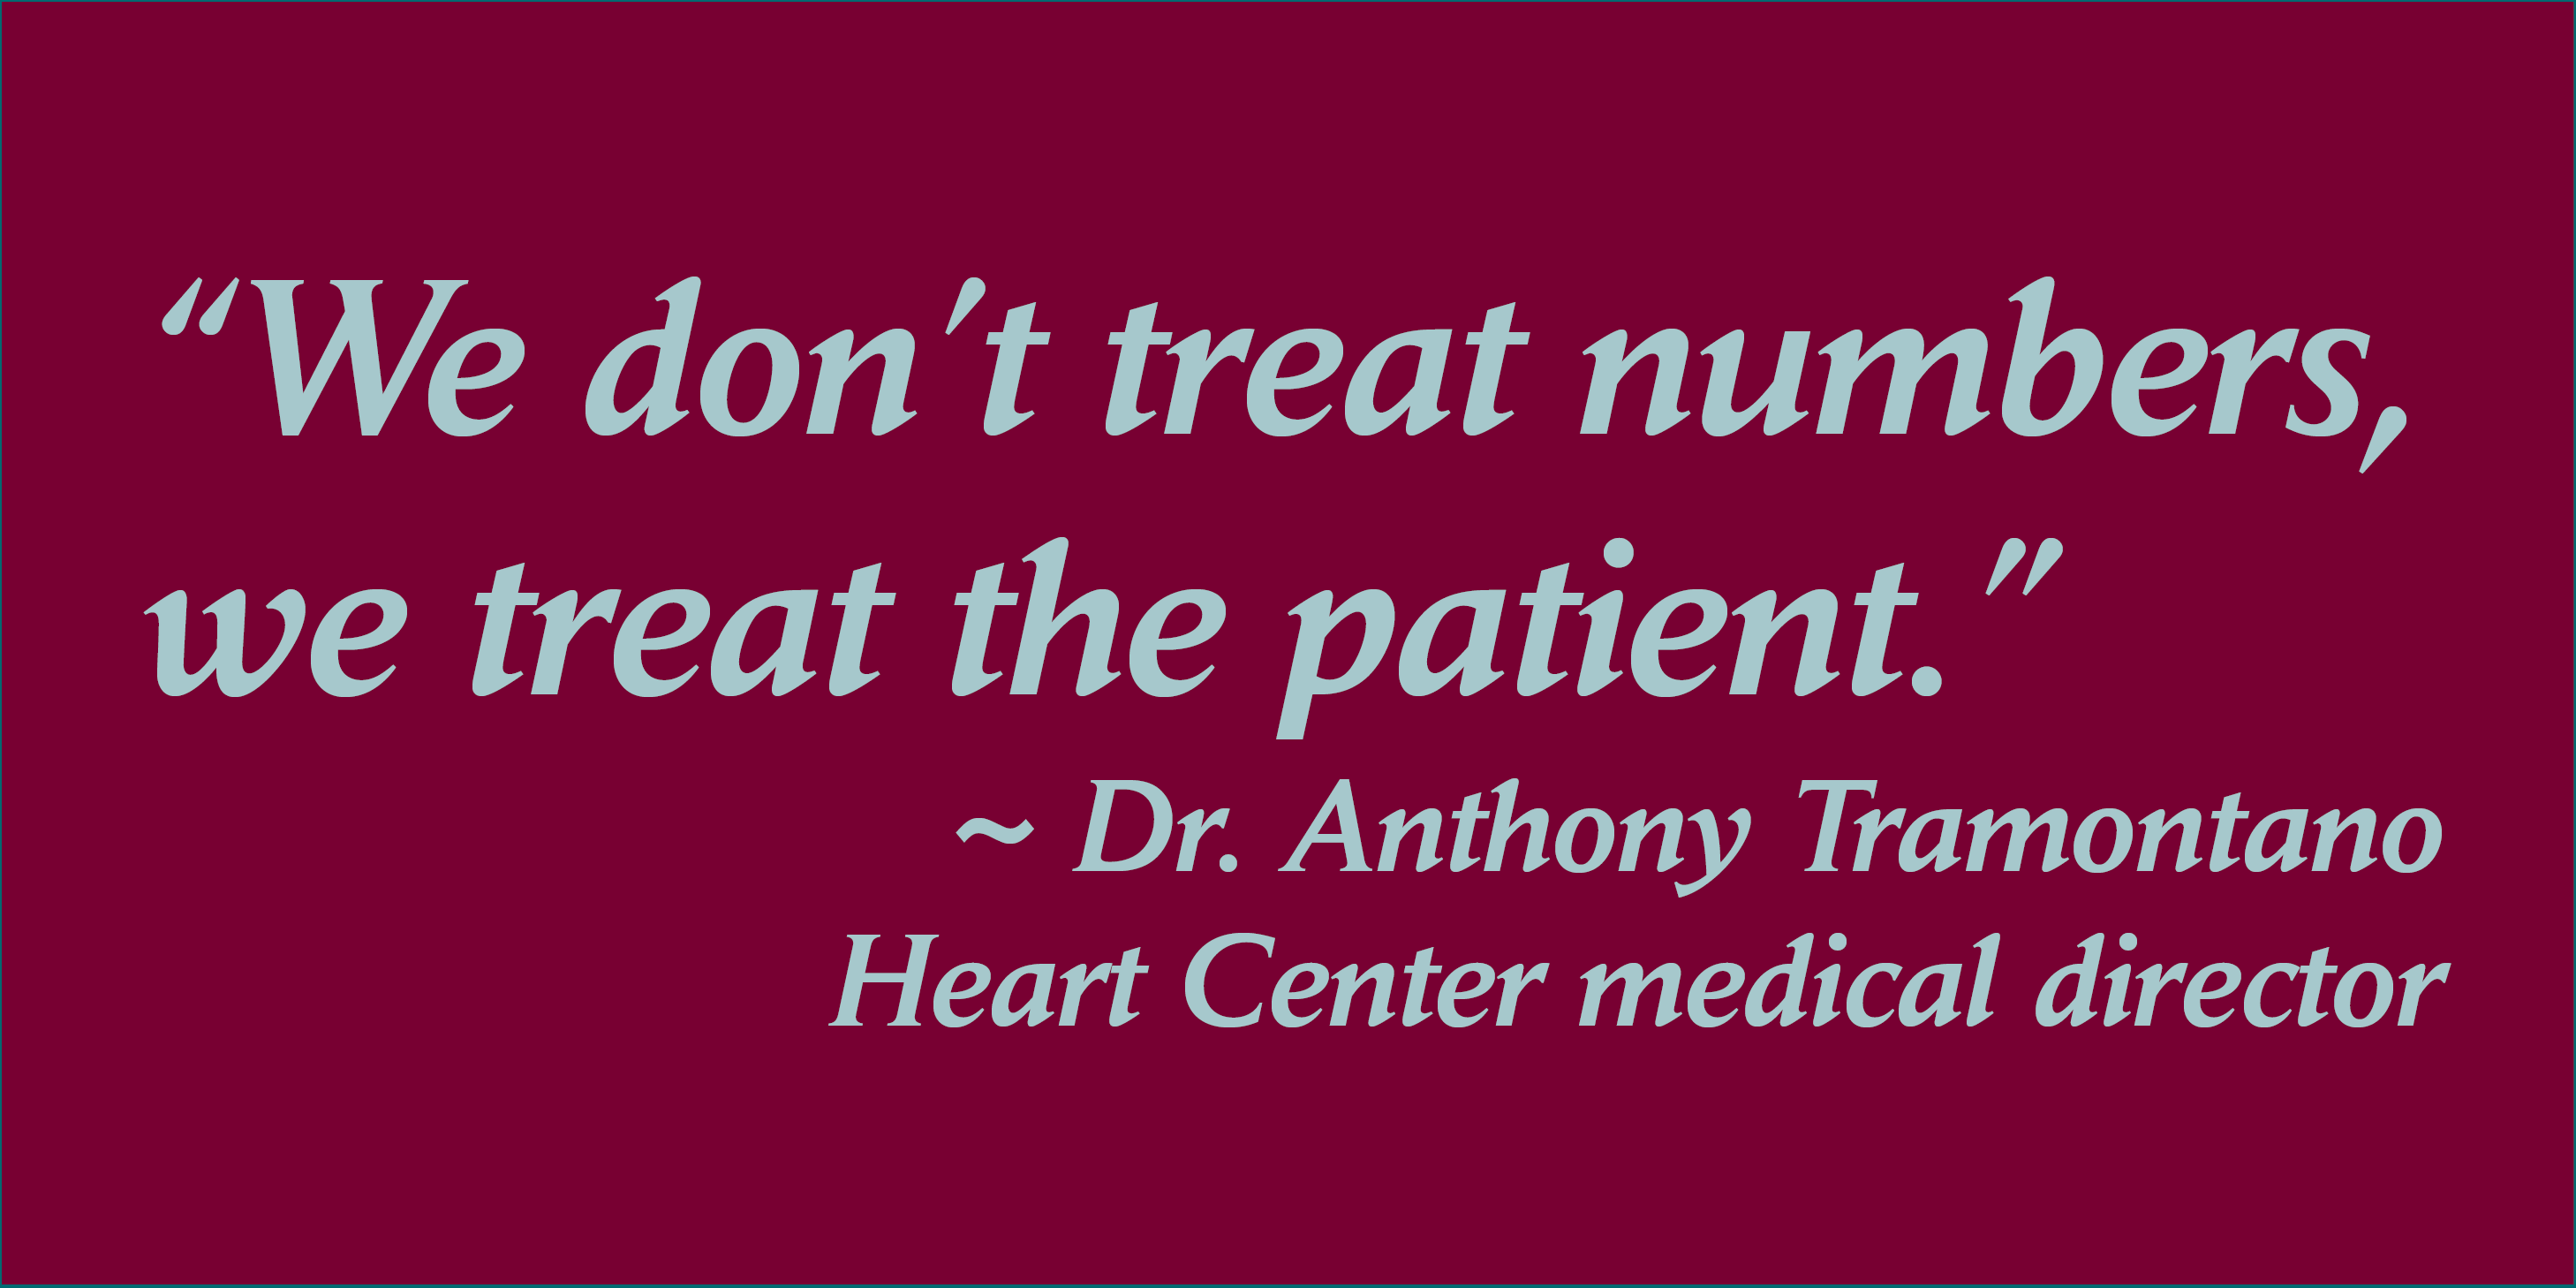 """Quote from Heart Center Medical Director Dr. Anthony Tramontano: """"We don't treat numbers, we treat the patient."""""""